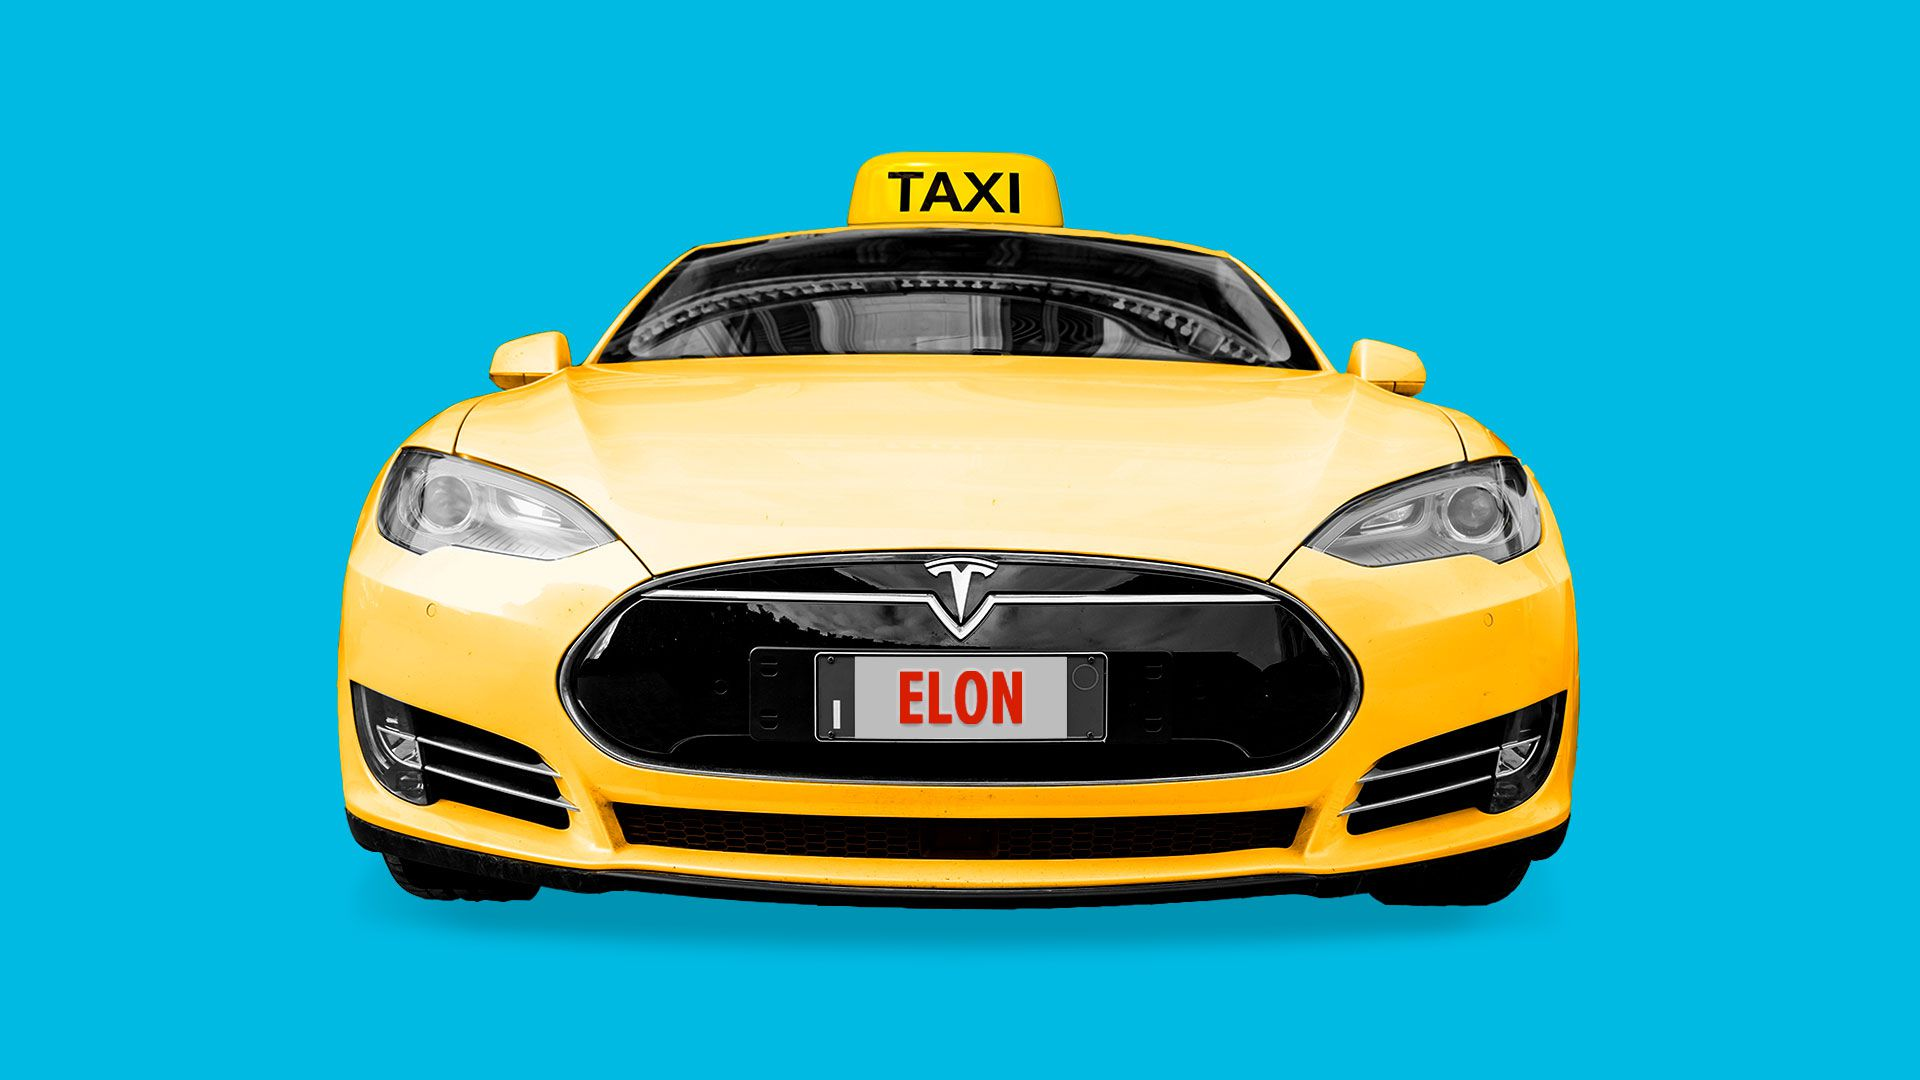 Illustration of a yellow Tesla car with a Taxi sign on top.